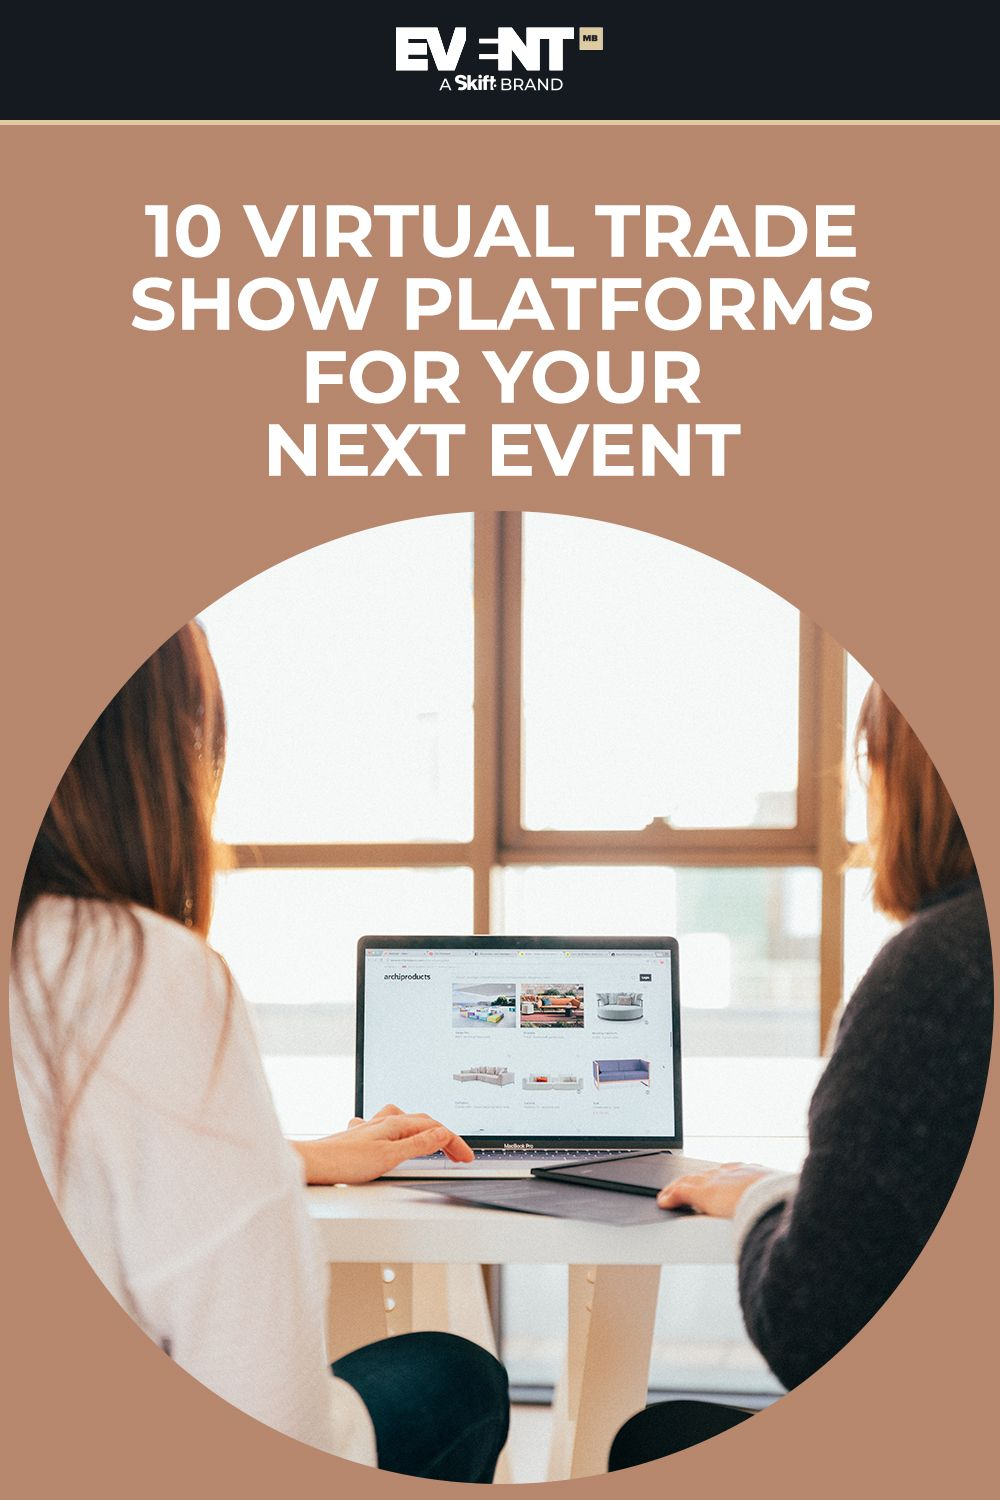 10 Virtual Trade Show Platforms for Your Next Event in